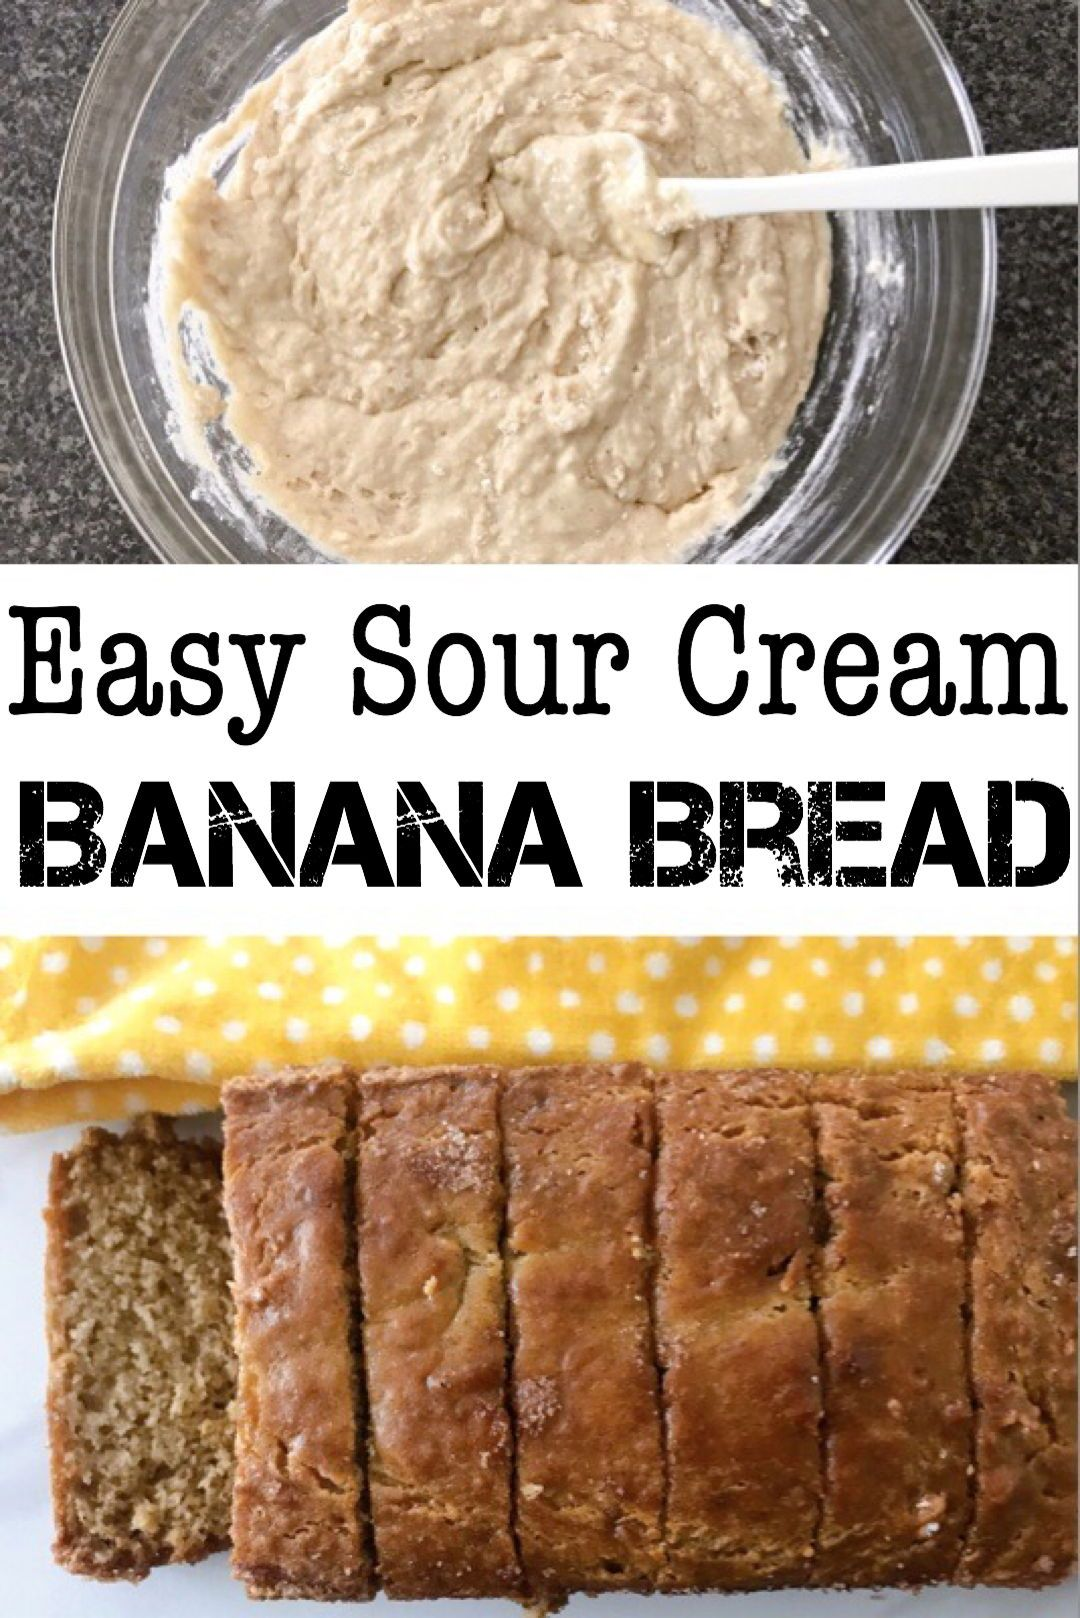 Sour Cream Banana Bread The Mommy Mouse Clubhouse Recipe In 2020 Sour Cream Banana Bread Delicious Banana Bread Recipe Sour Cream Recipes